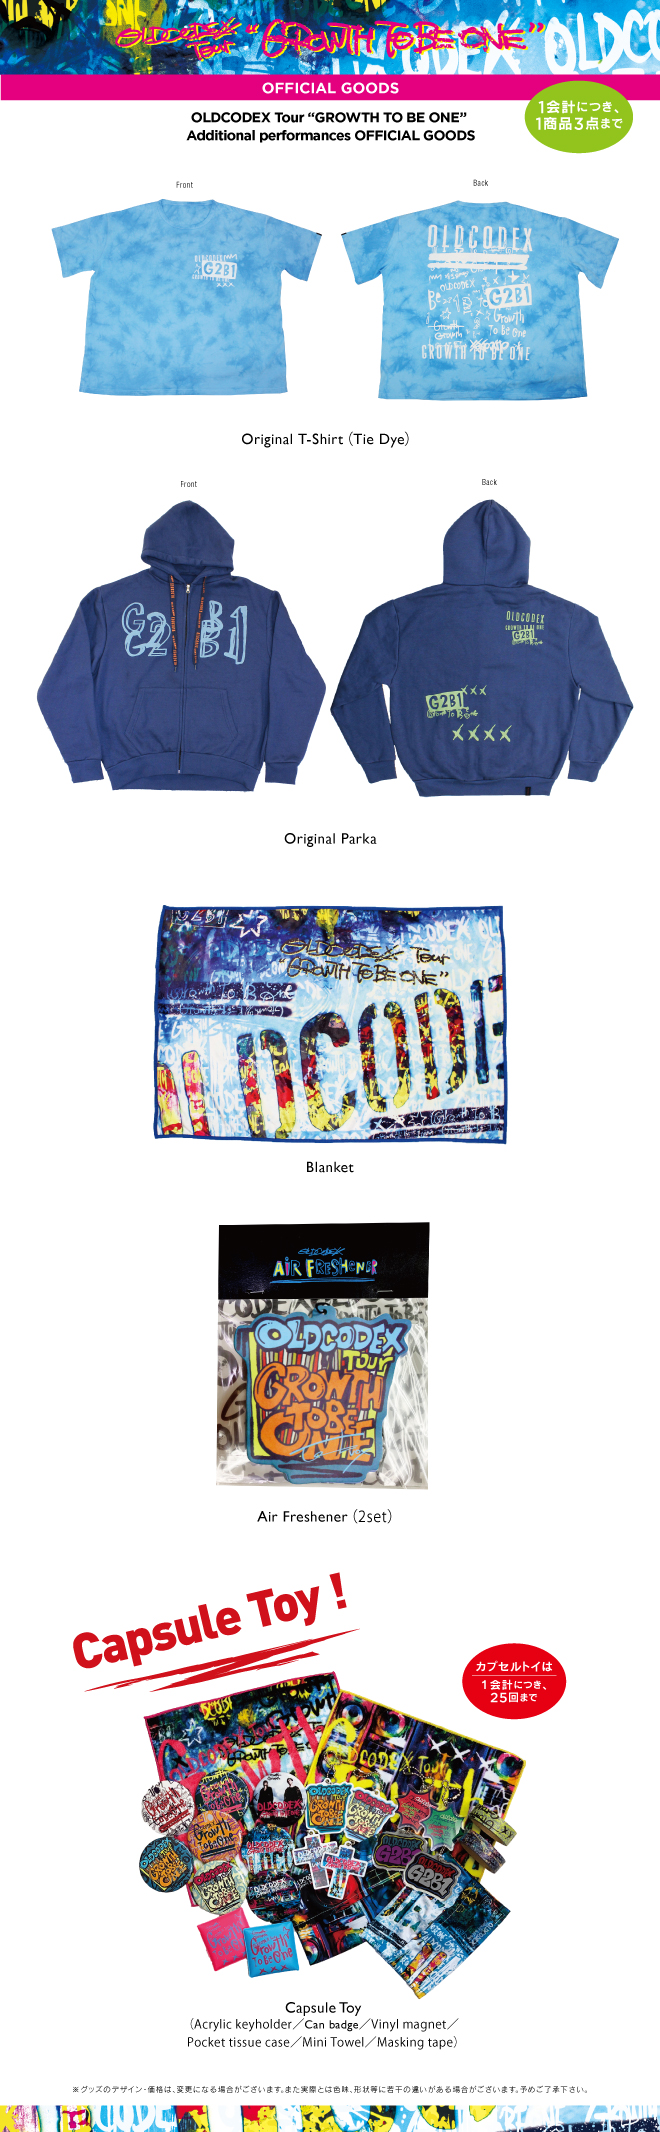 "OLDCODEX Tour ""GROWTH TO BE ONE"" Additional performances OFFICIAL GOODS"